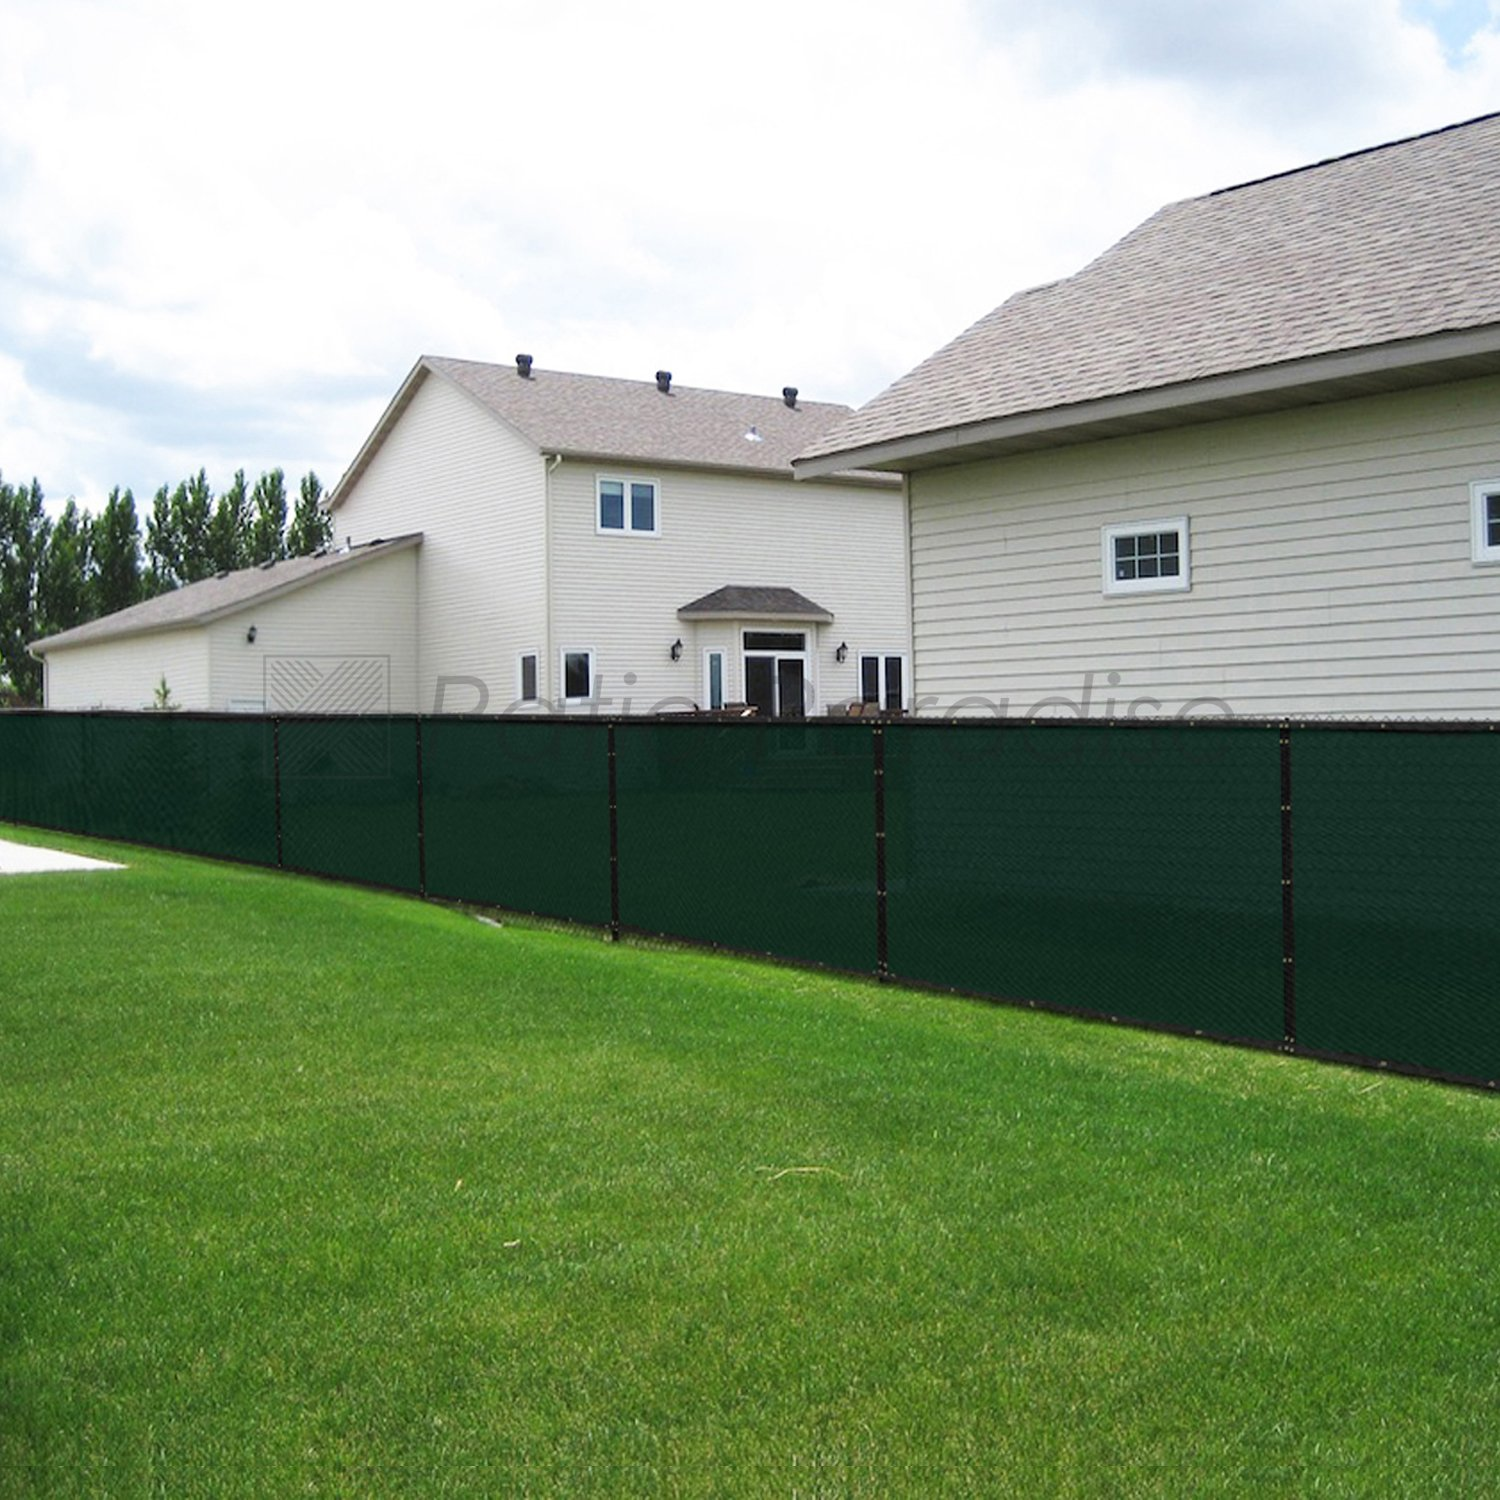 Patio Paradise 8' x 80' Dark Green Fence Privacy Screen, Commercial Outdoor Backyard Shade Windscreen Mesh Fabric with brass Gromment 85% Blockage- 3 Years Warranty (Customized Sizes Available) by Patio Paradise (Image #4)